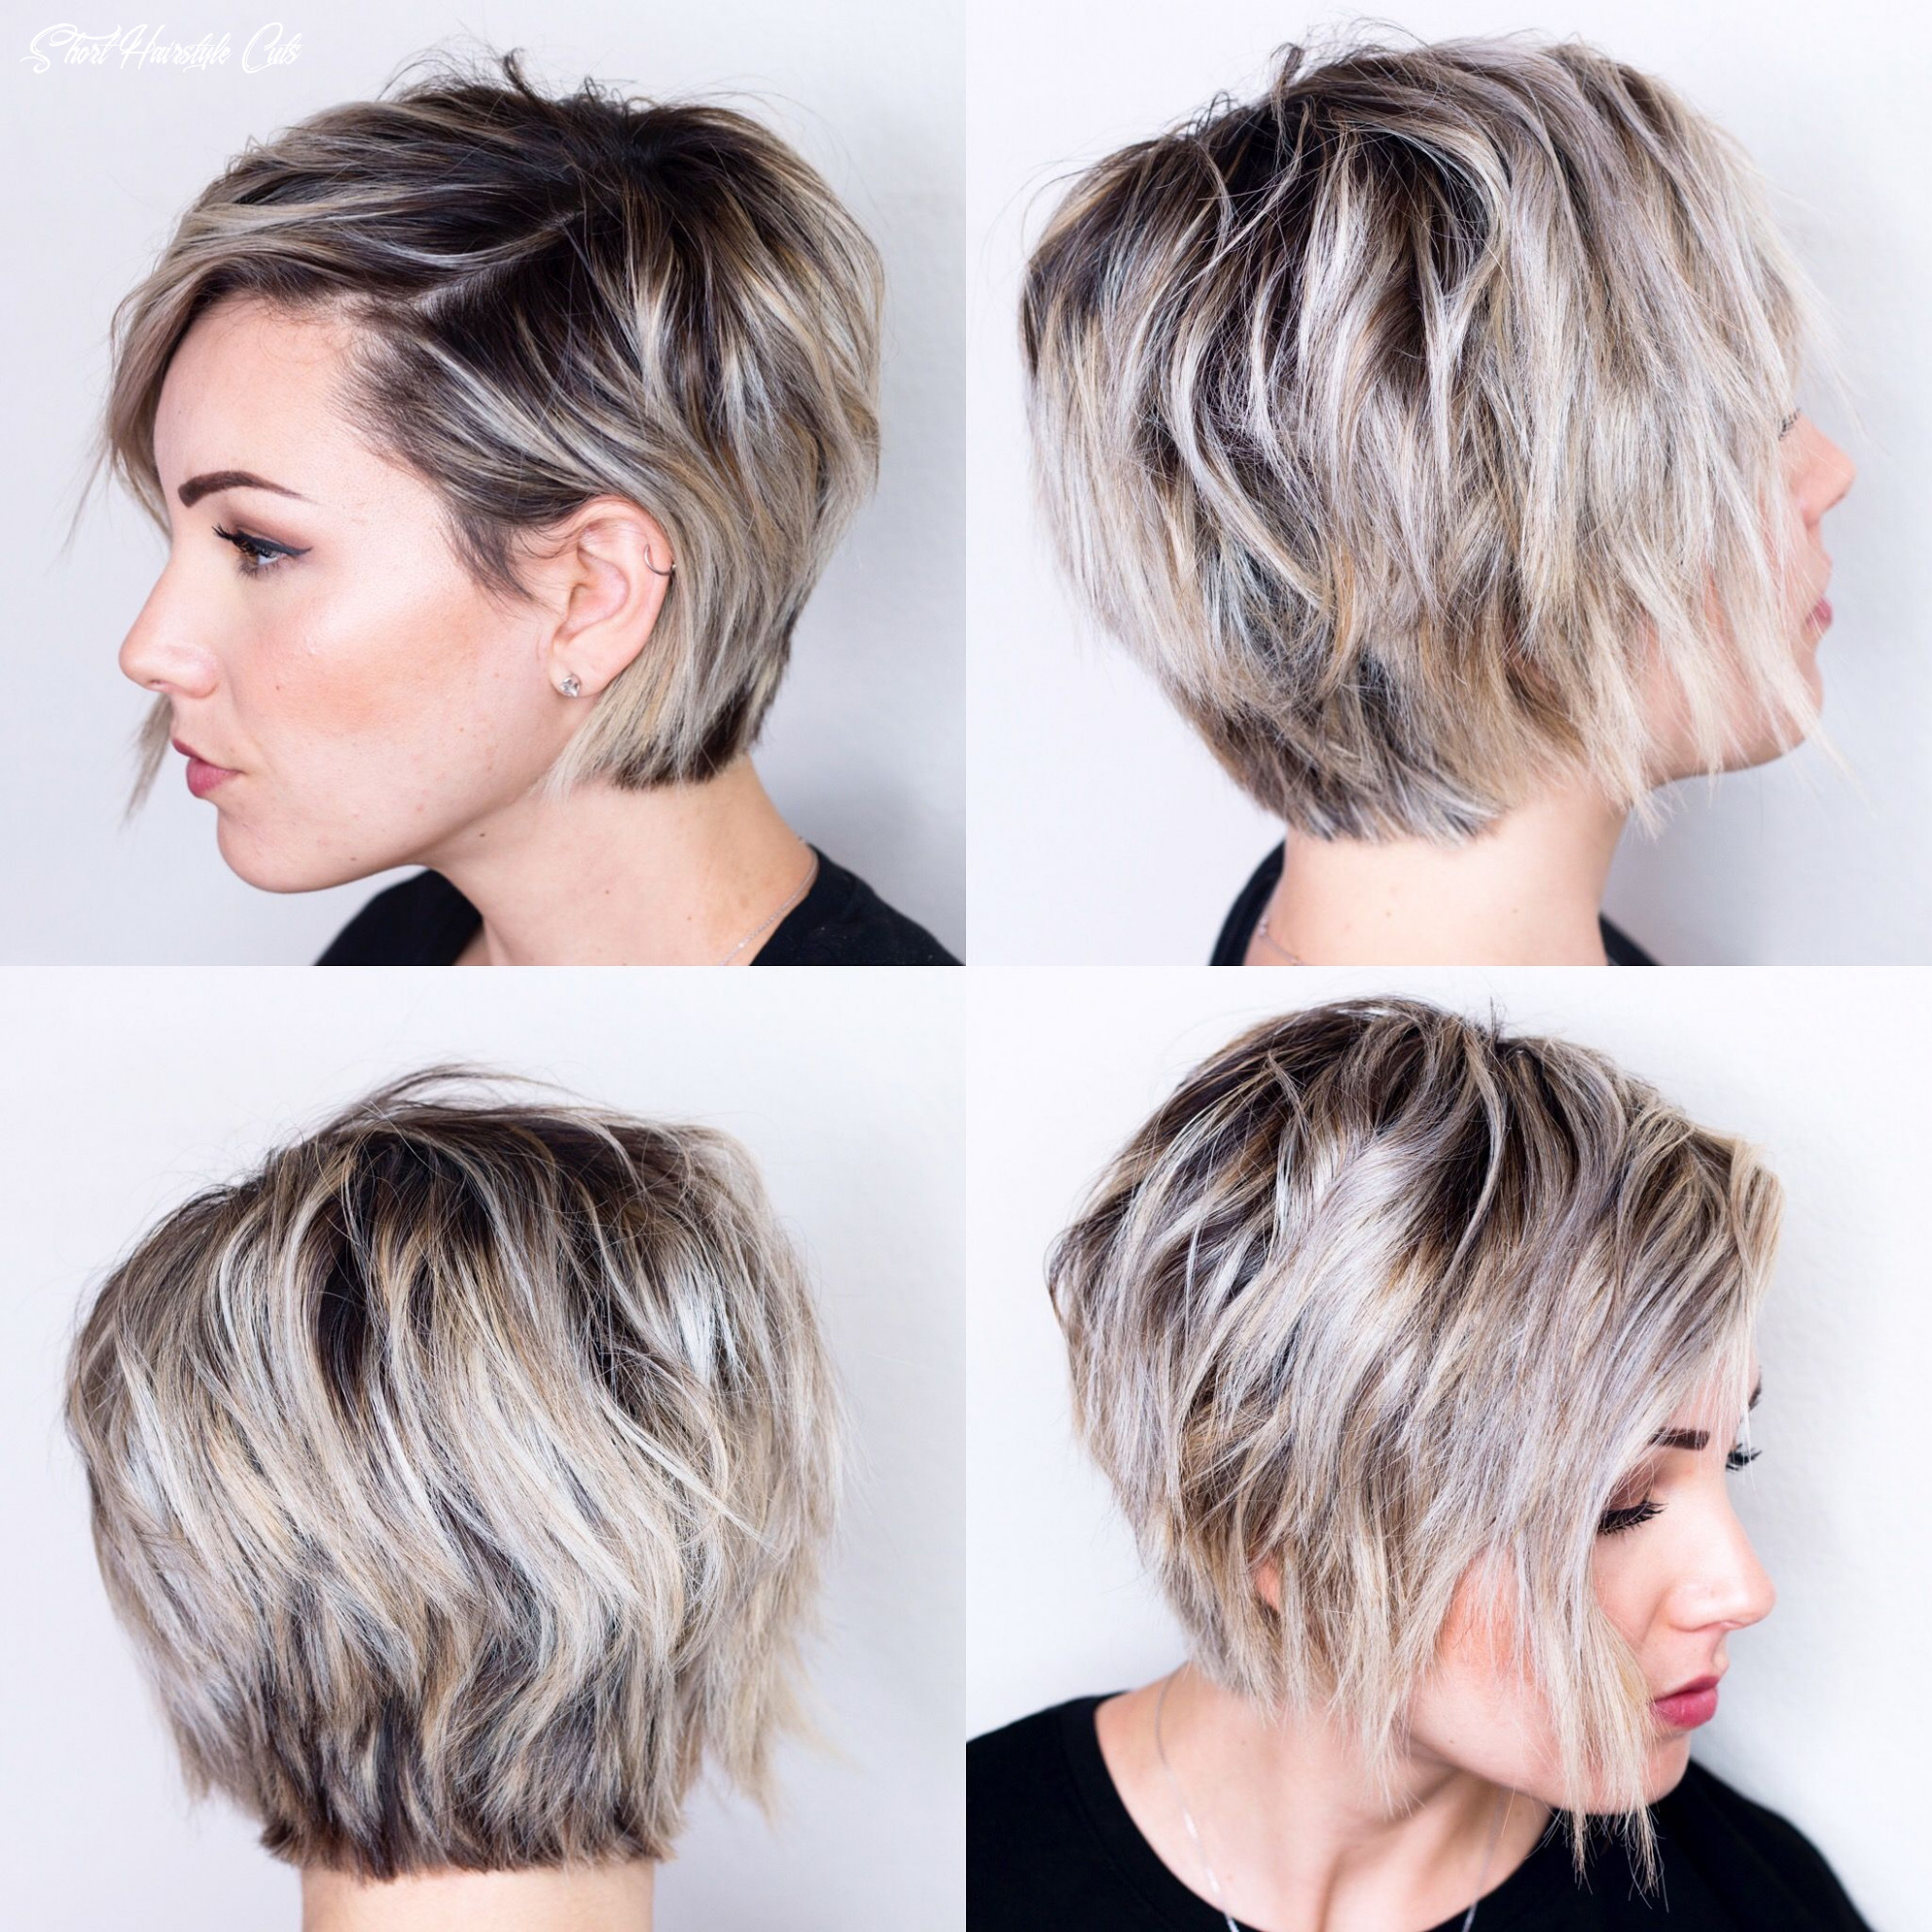 10 view of short hair   oval face hairstyles, growing out short